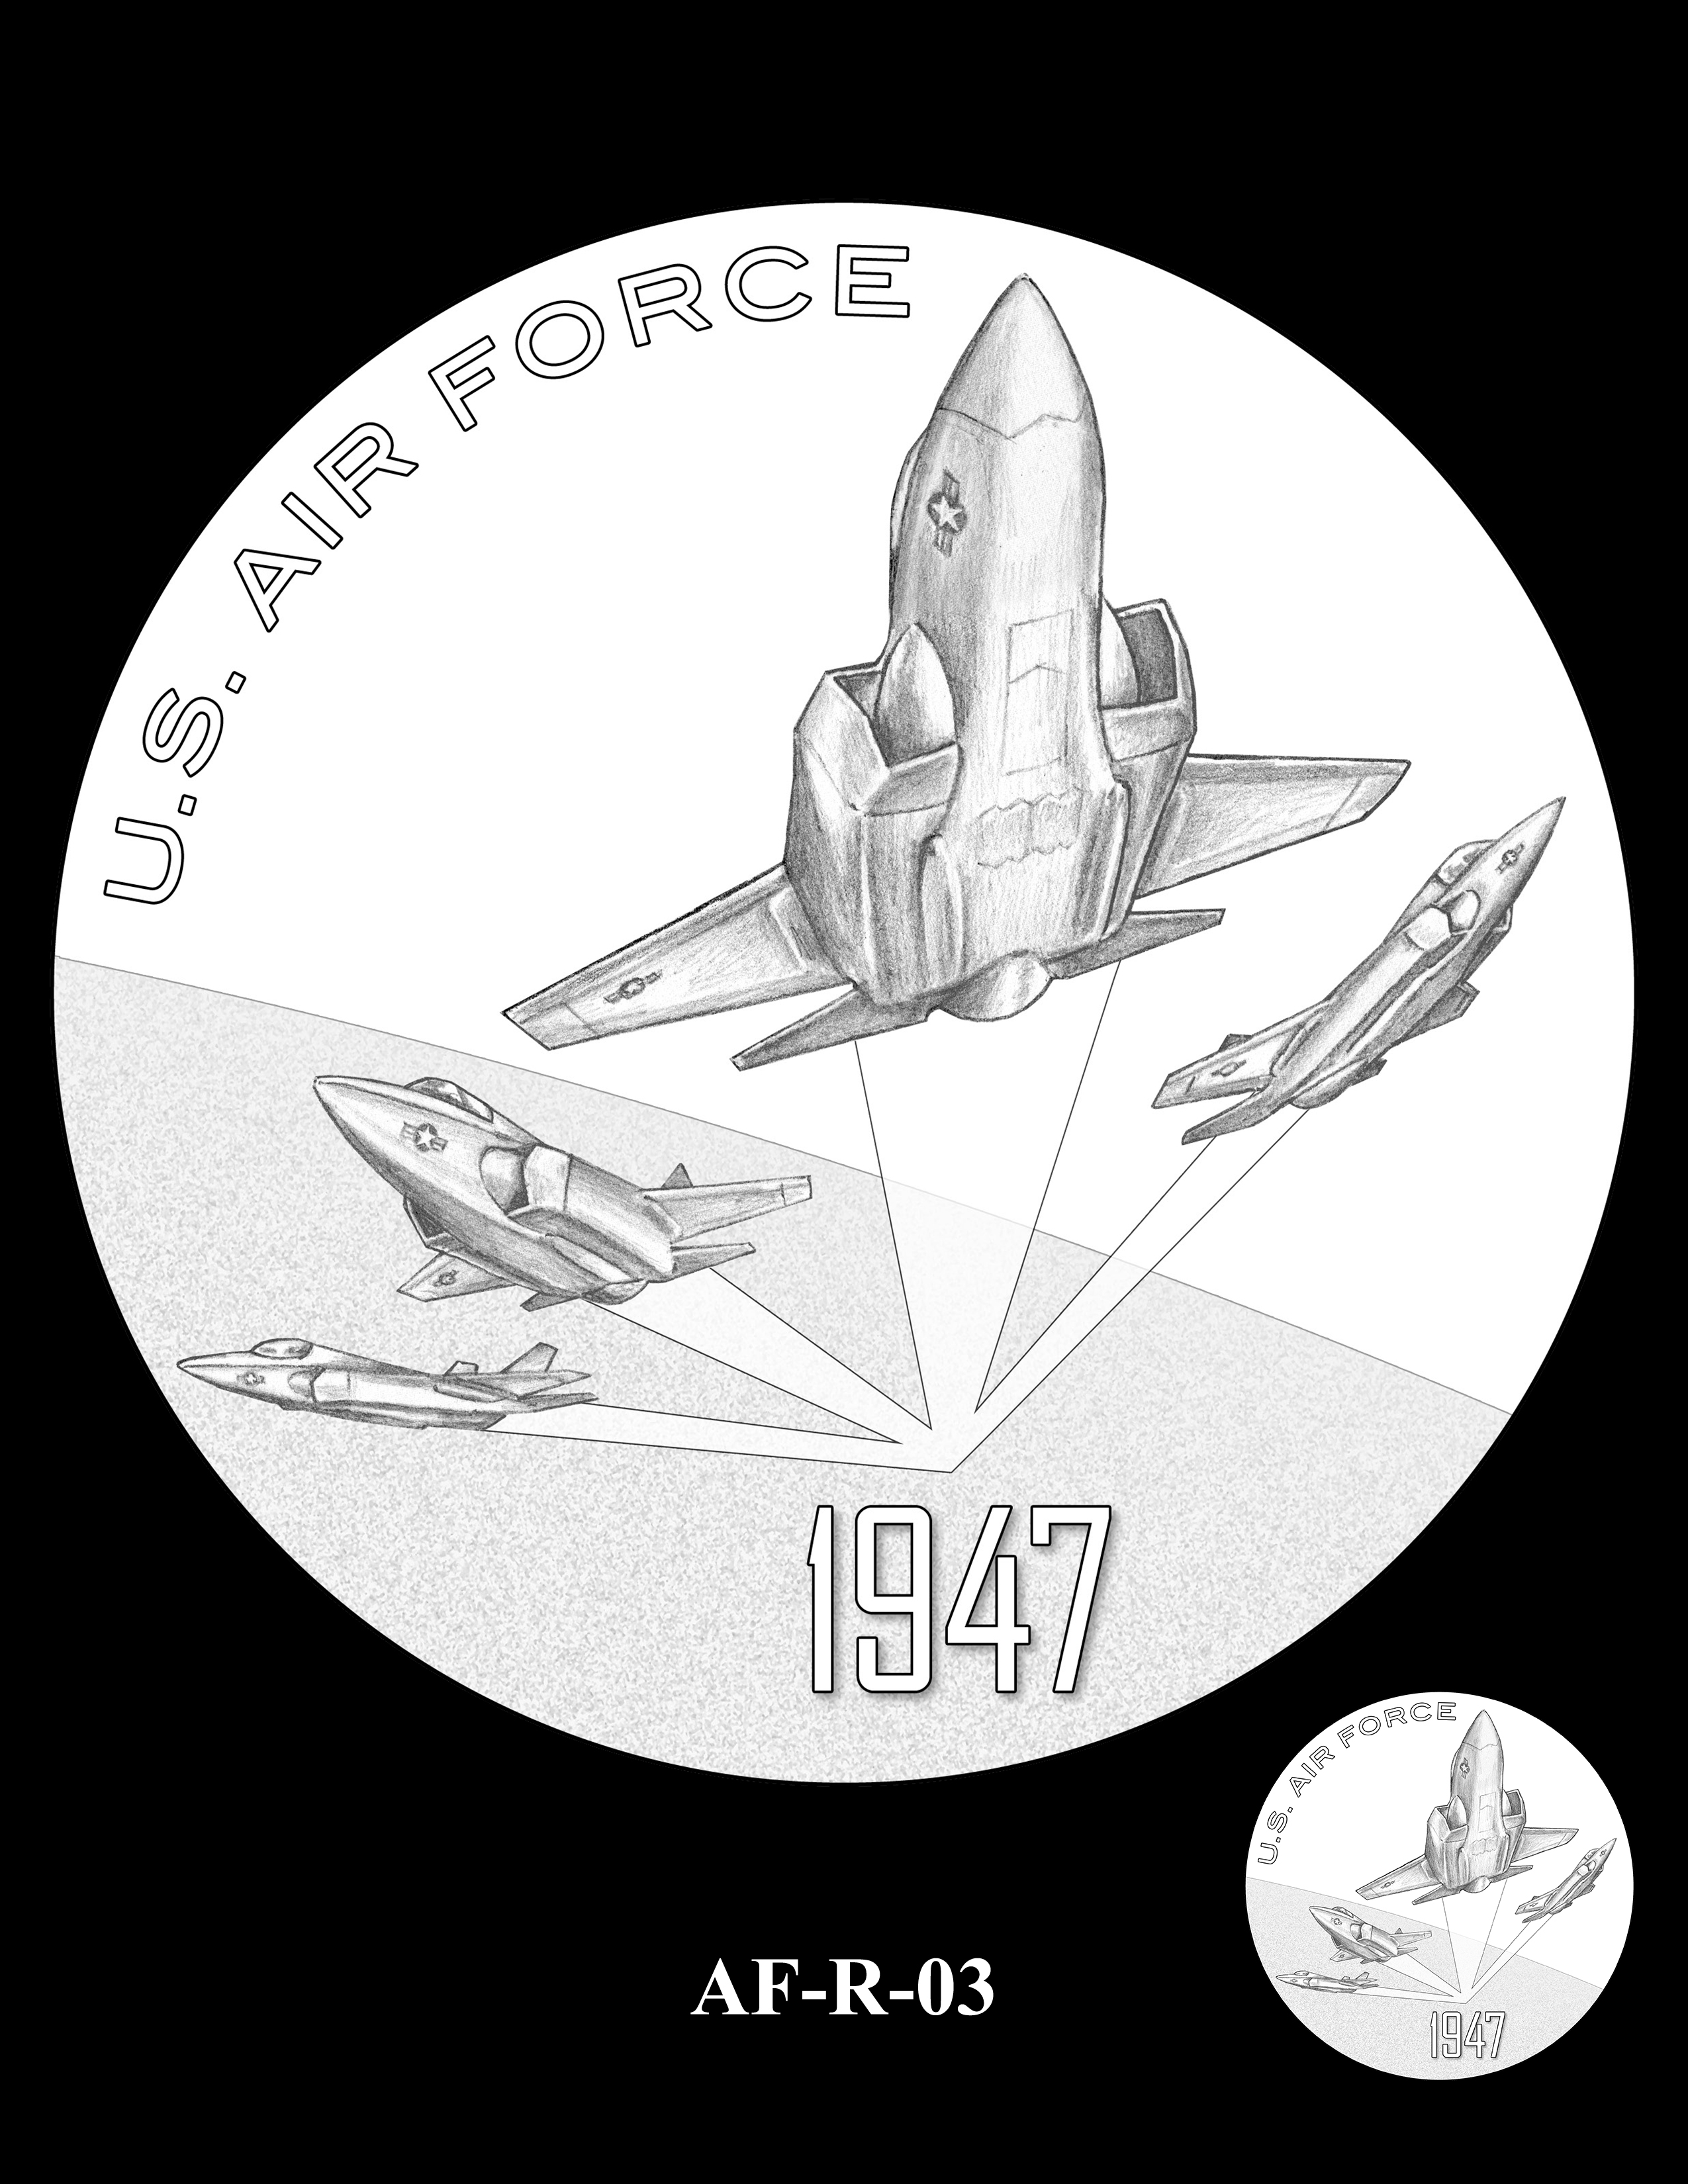 AF-R-03 -- Armed Forces Medal - Air Force